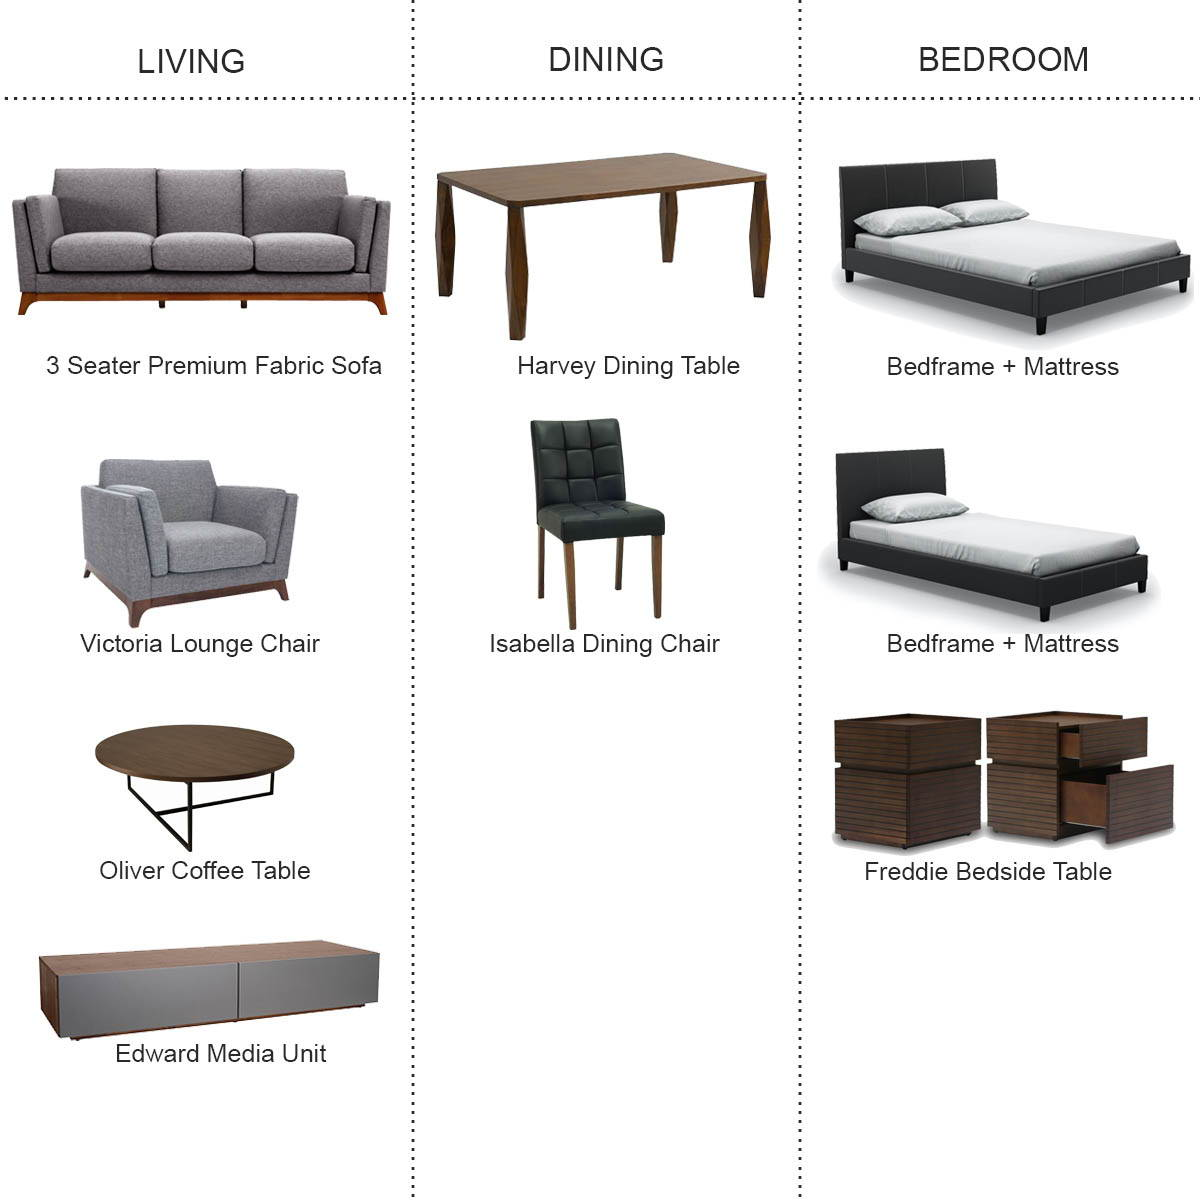 Furniture for rent singapore